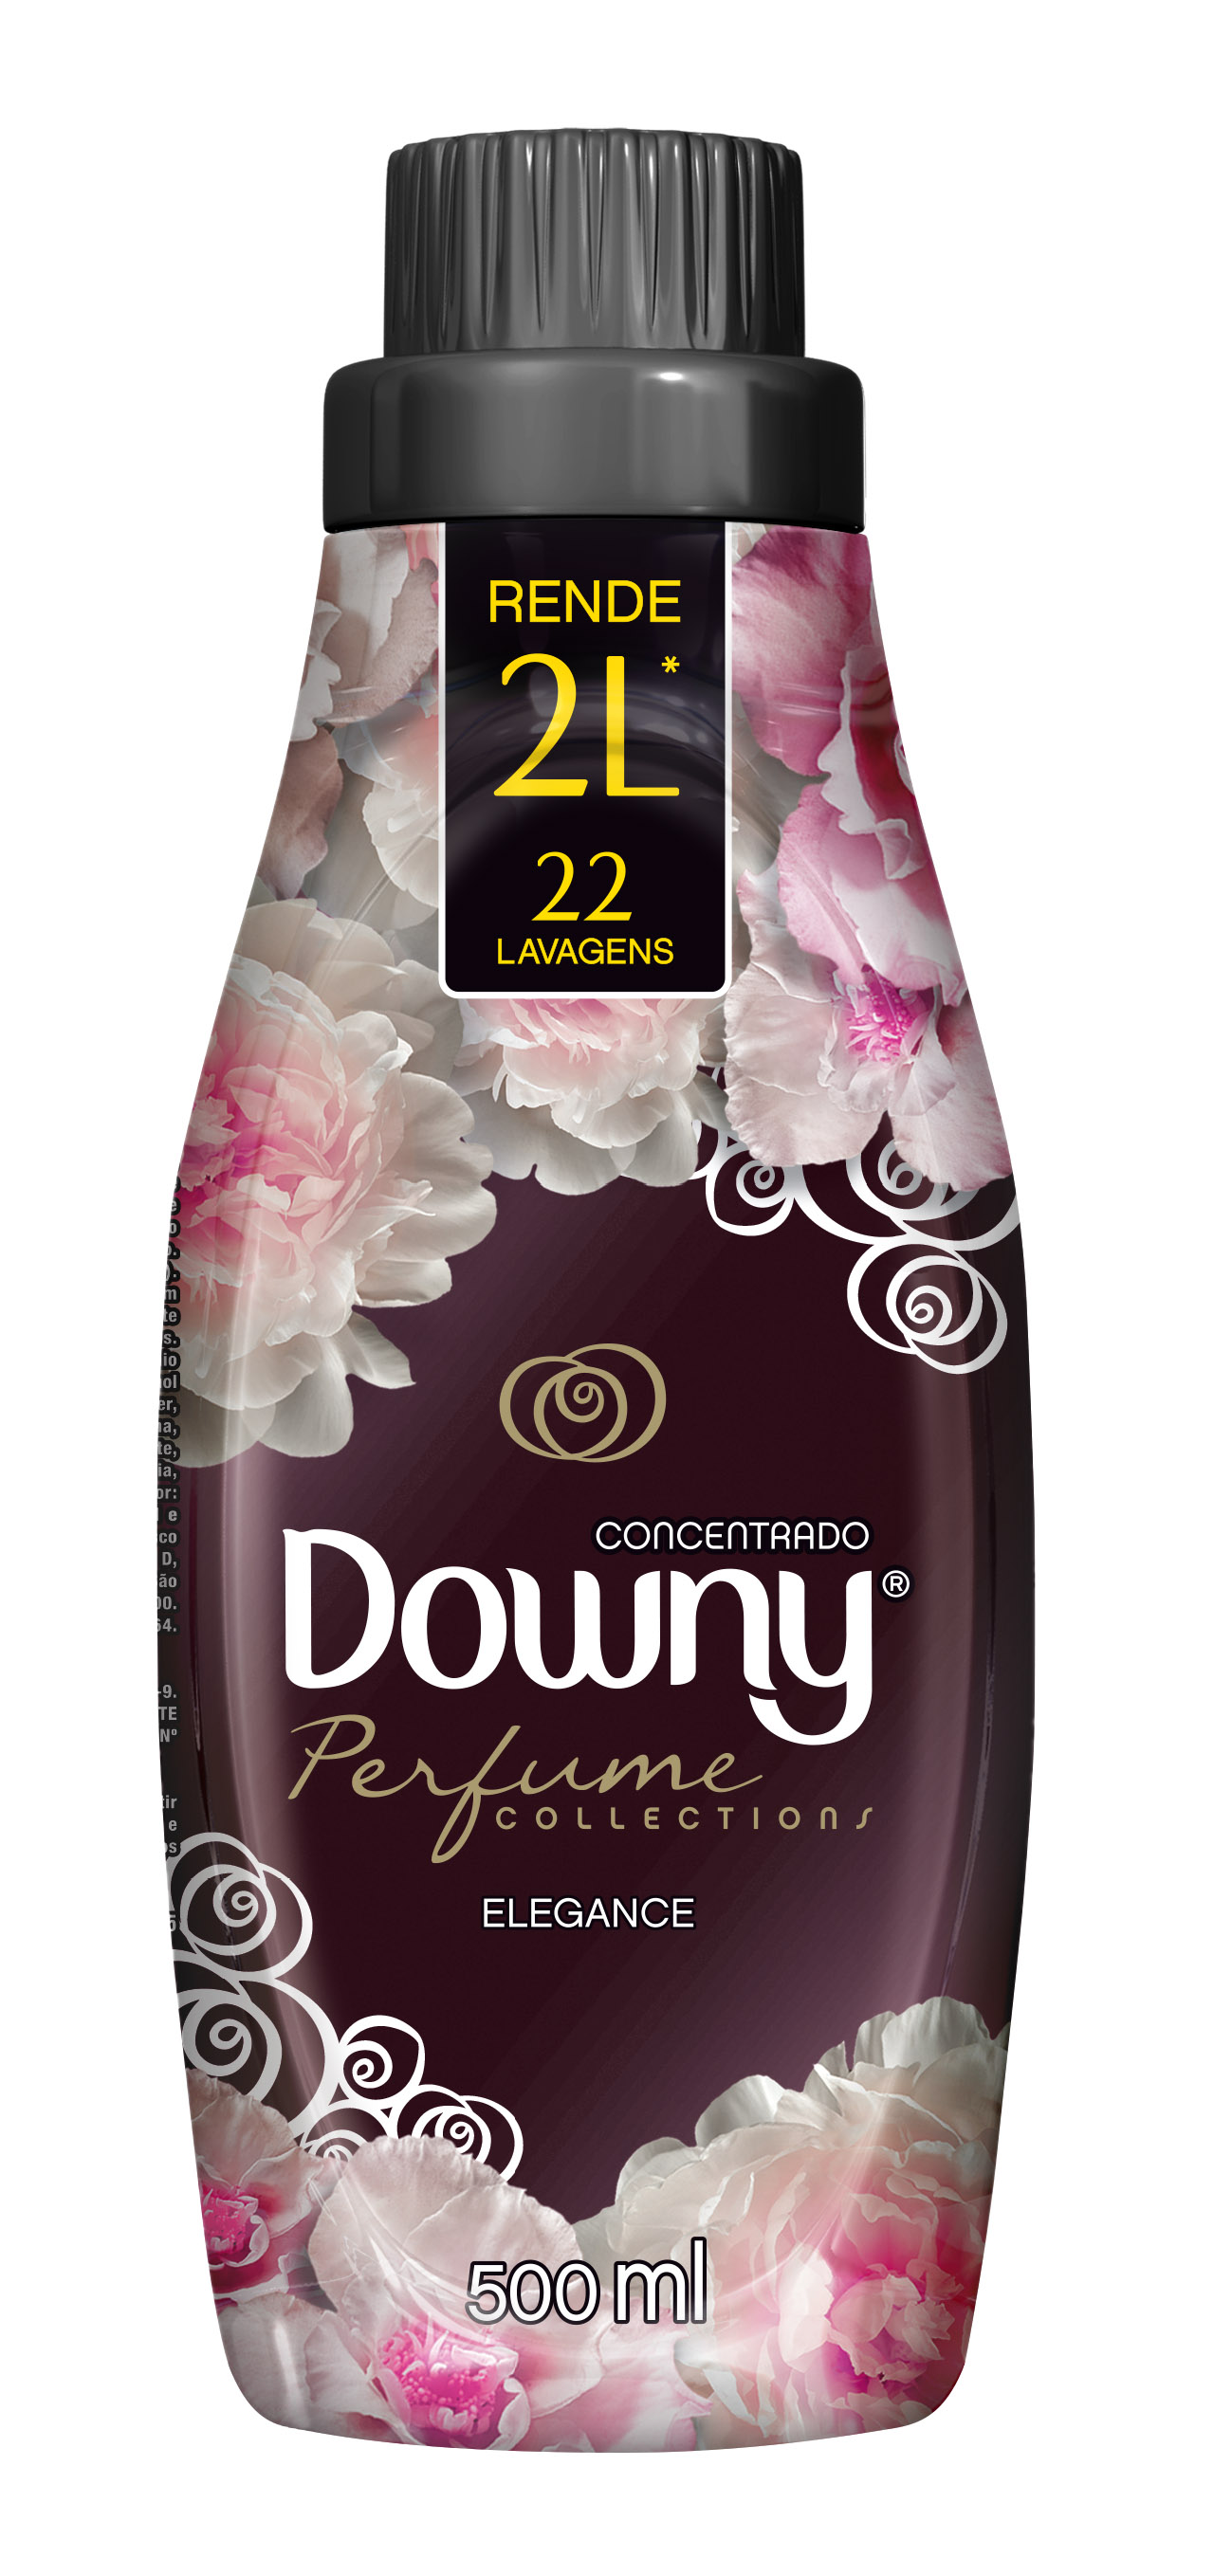 Amaciante Concentrado Downy Elegance 500ml